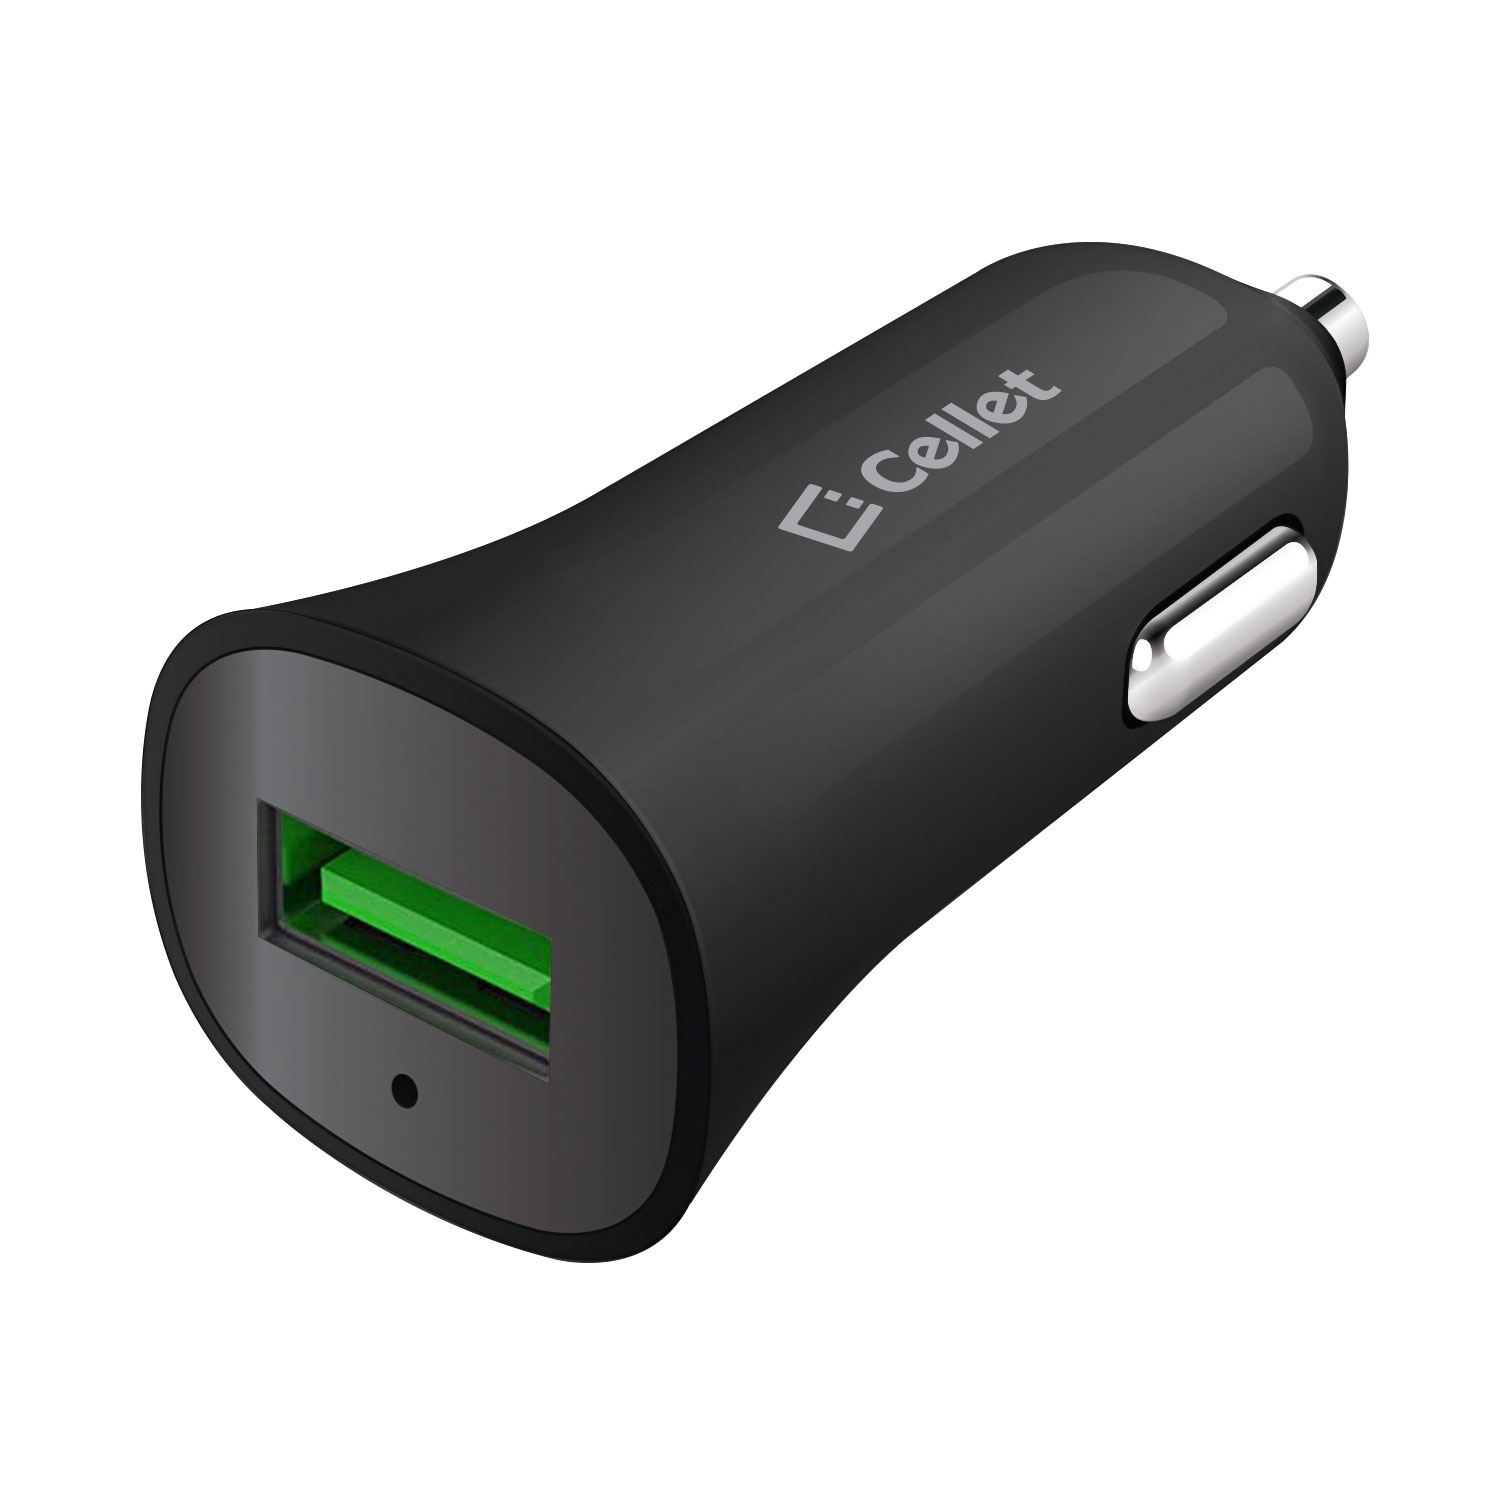 Pantech Jest 2 Car Charger Quick Charge 3.0 Black 3.3ft